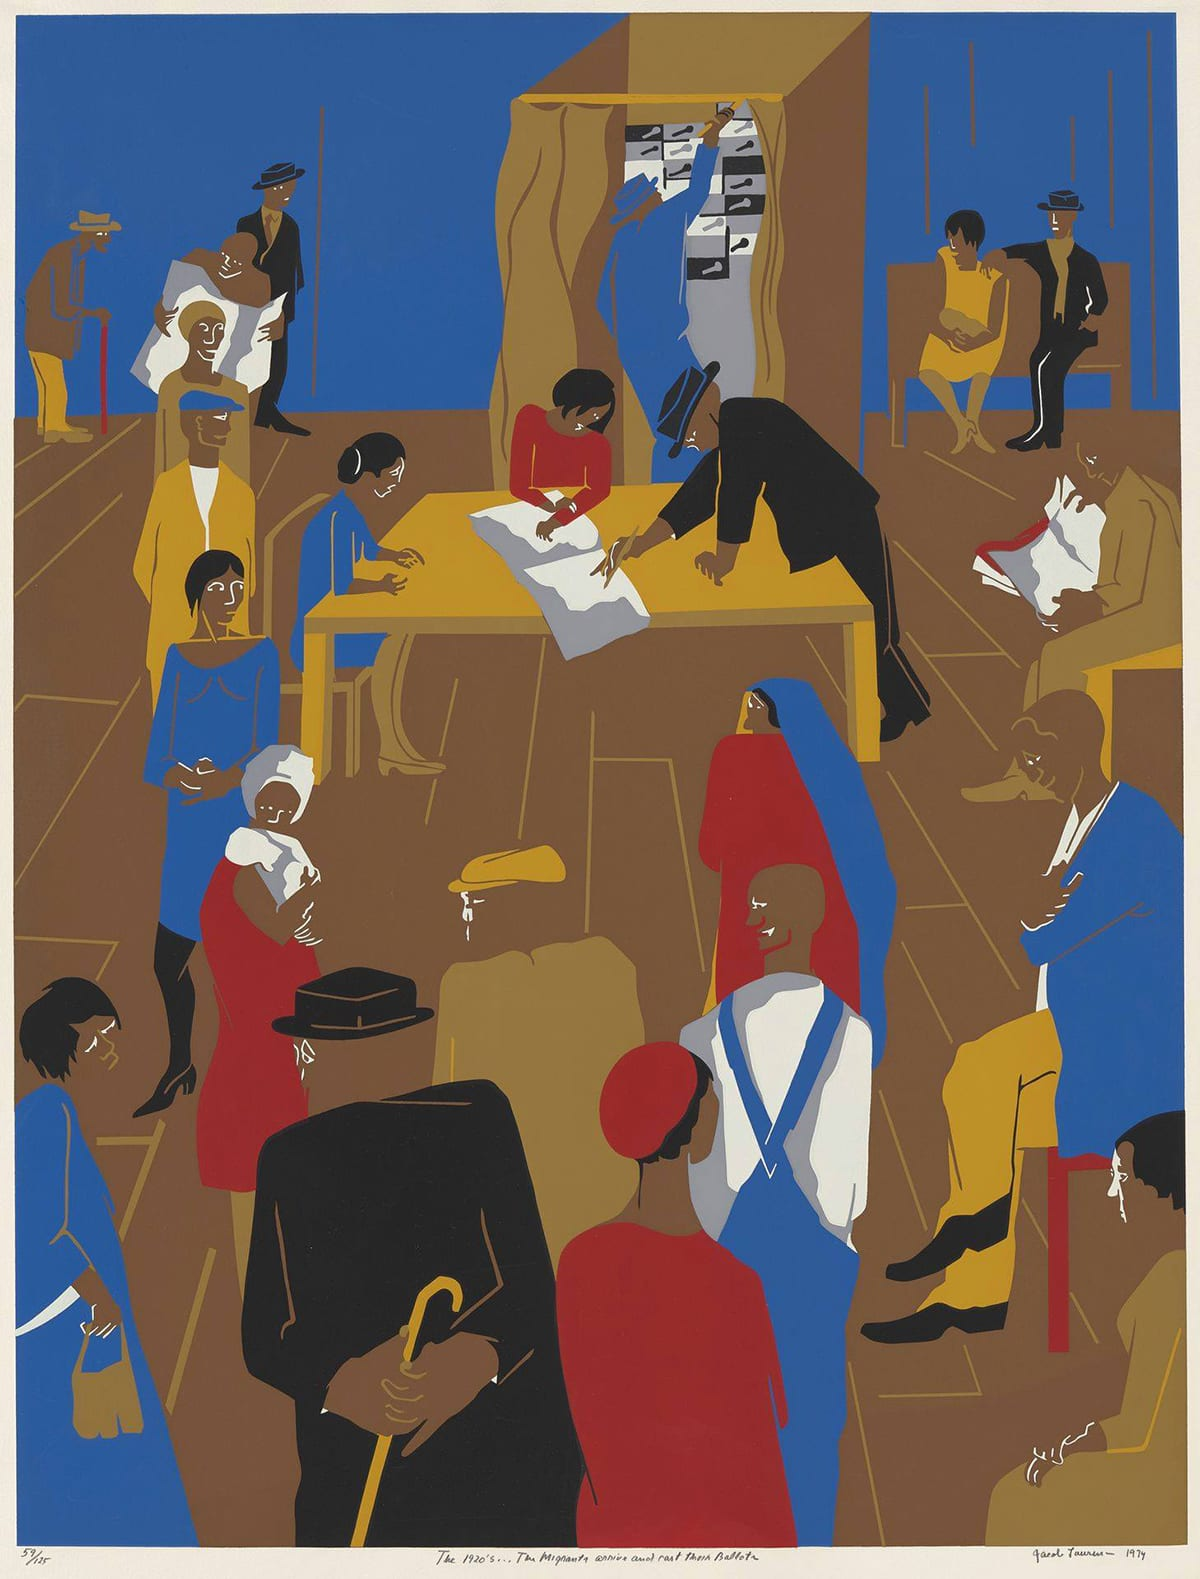 1920's…The Migrants Arrive and Cast Their Ballots, Jacob Lawrence, 32 1/16 x 24 7/16 inches, color screenprint on paper. A vertical, rectangular screenprint depicting the interior of a polling place filled with voters. In top third of the print, a brown voting booth is at center with its curtain partially open to reveal a blue clad voter reaching up to pull levers on a gray, white, and black mechanical voting machine. Positioned in front of the booth is a long, tan table with people at three of the sides. At center is a female figure in red with an open book in front of her. A male figure in black at right signs the book and another female figure in blue sits at the left end of the table. Various figures wait in line creating a loose U shape around the table and voting booth. Some read newspapers, some turn to each other, two hold children and a few are seated. A blue wall stretches across the width of the print at top and the brown floor takes up the bottom two thirds of the work. The print contains limited colors, primarily blue, brick red, black, brown, tan and white. Colors are flat and without variation. Details such as facial features and floorboards are picked out in white or tan outlines.